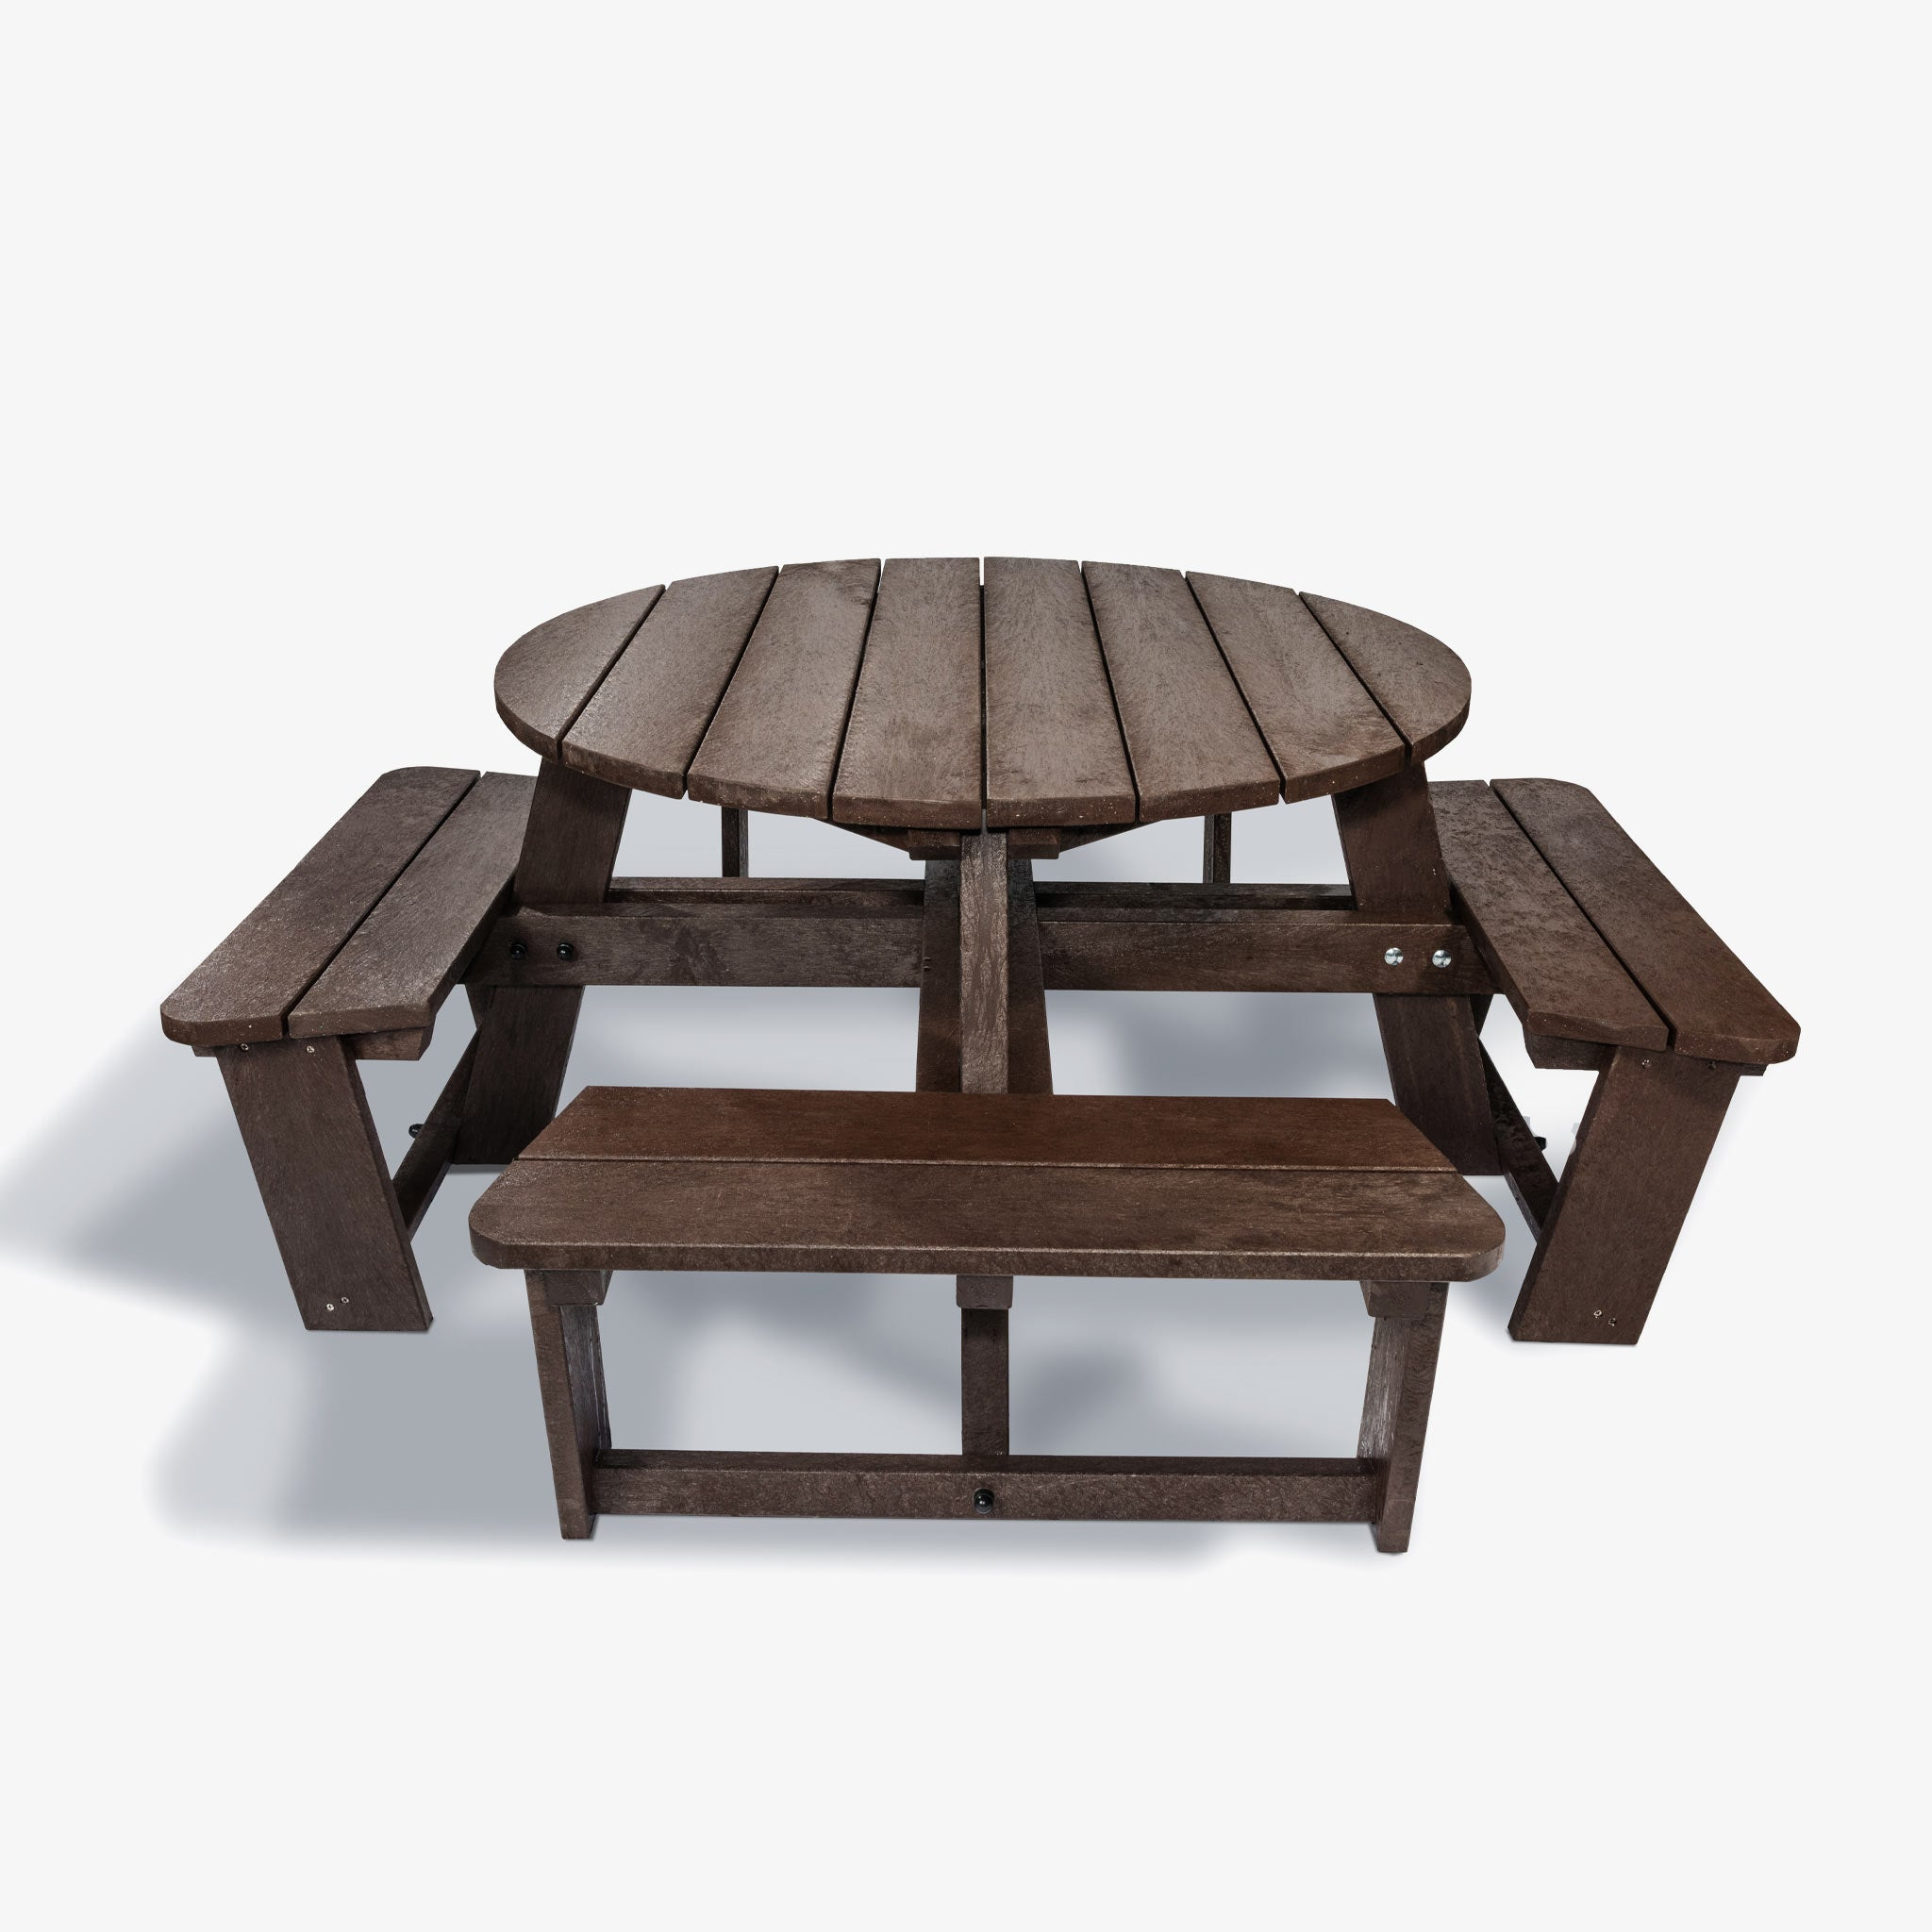 Henley Picnic Table | Mixed